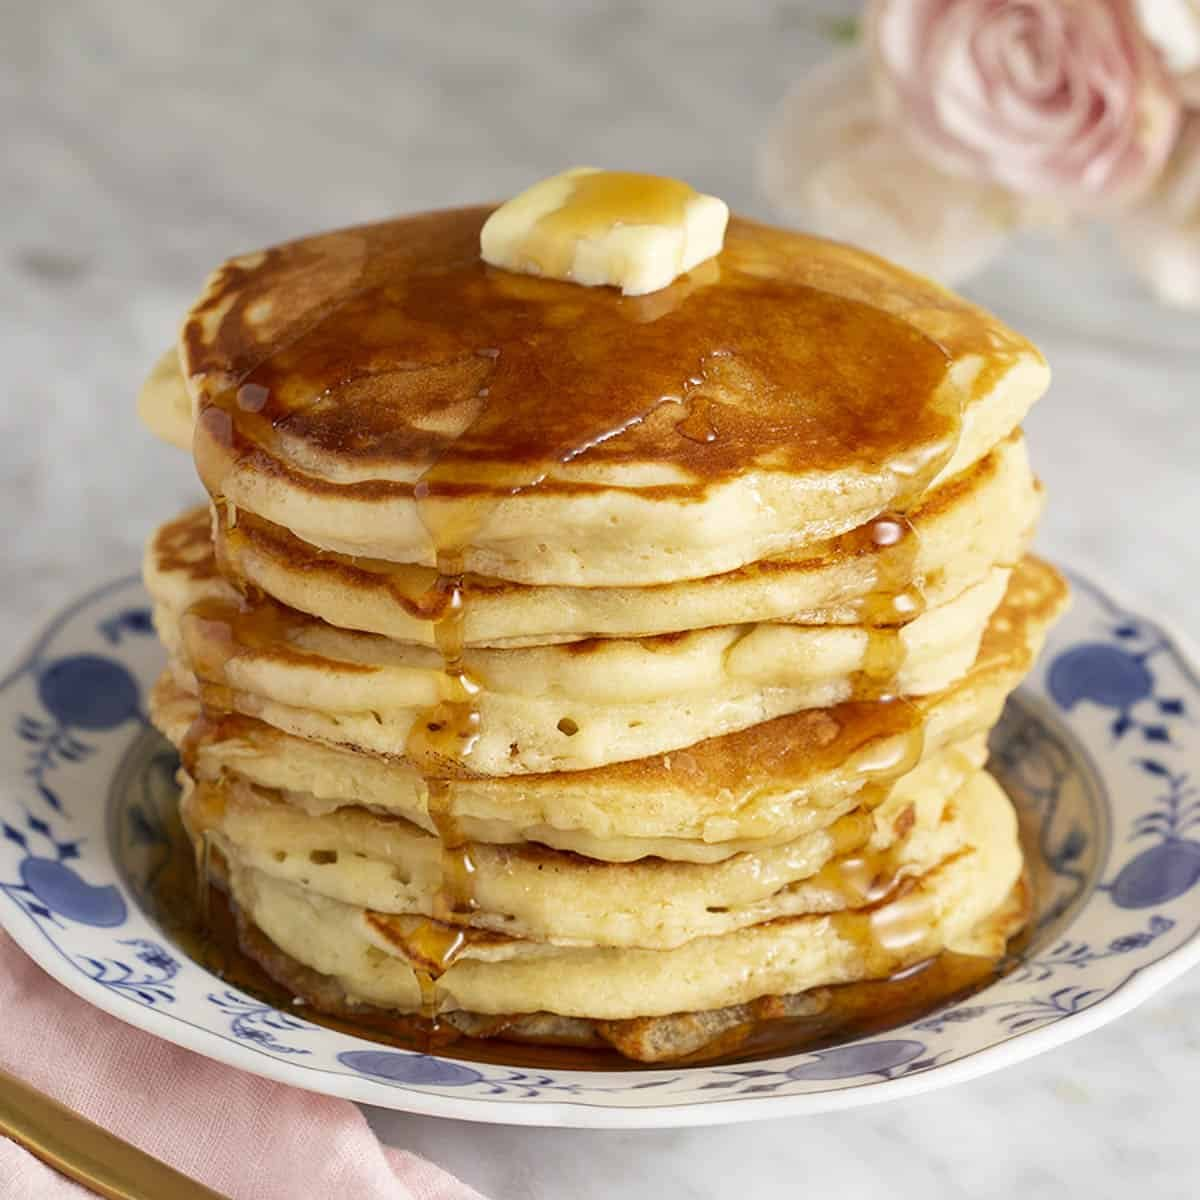 Flooding the #MillionMAGAMarch with pancakes, join us... https://t.co/6uzg3aIK9t